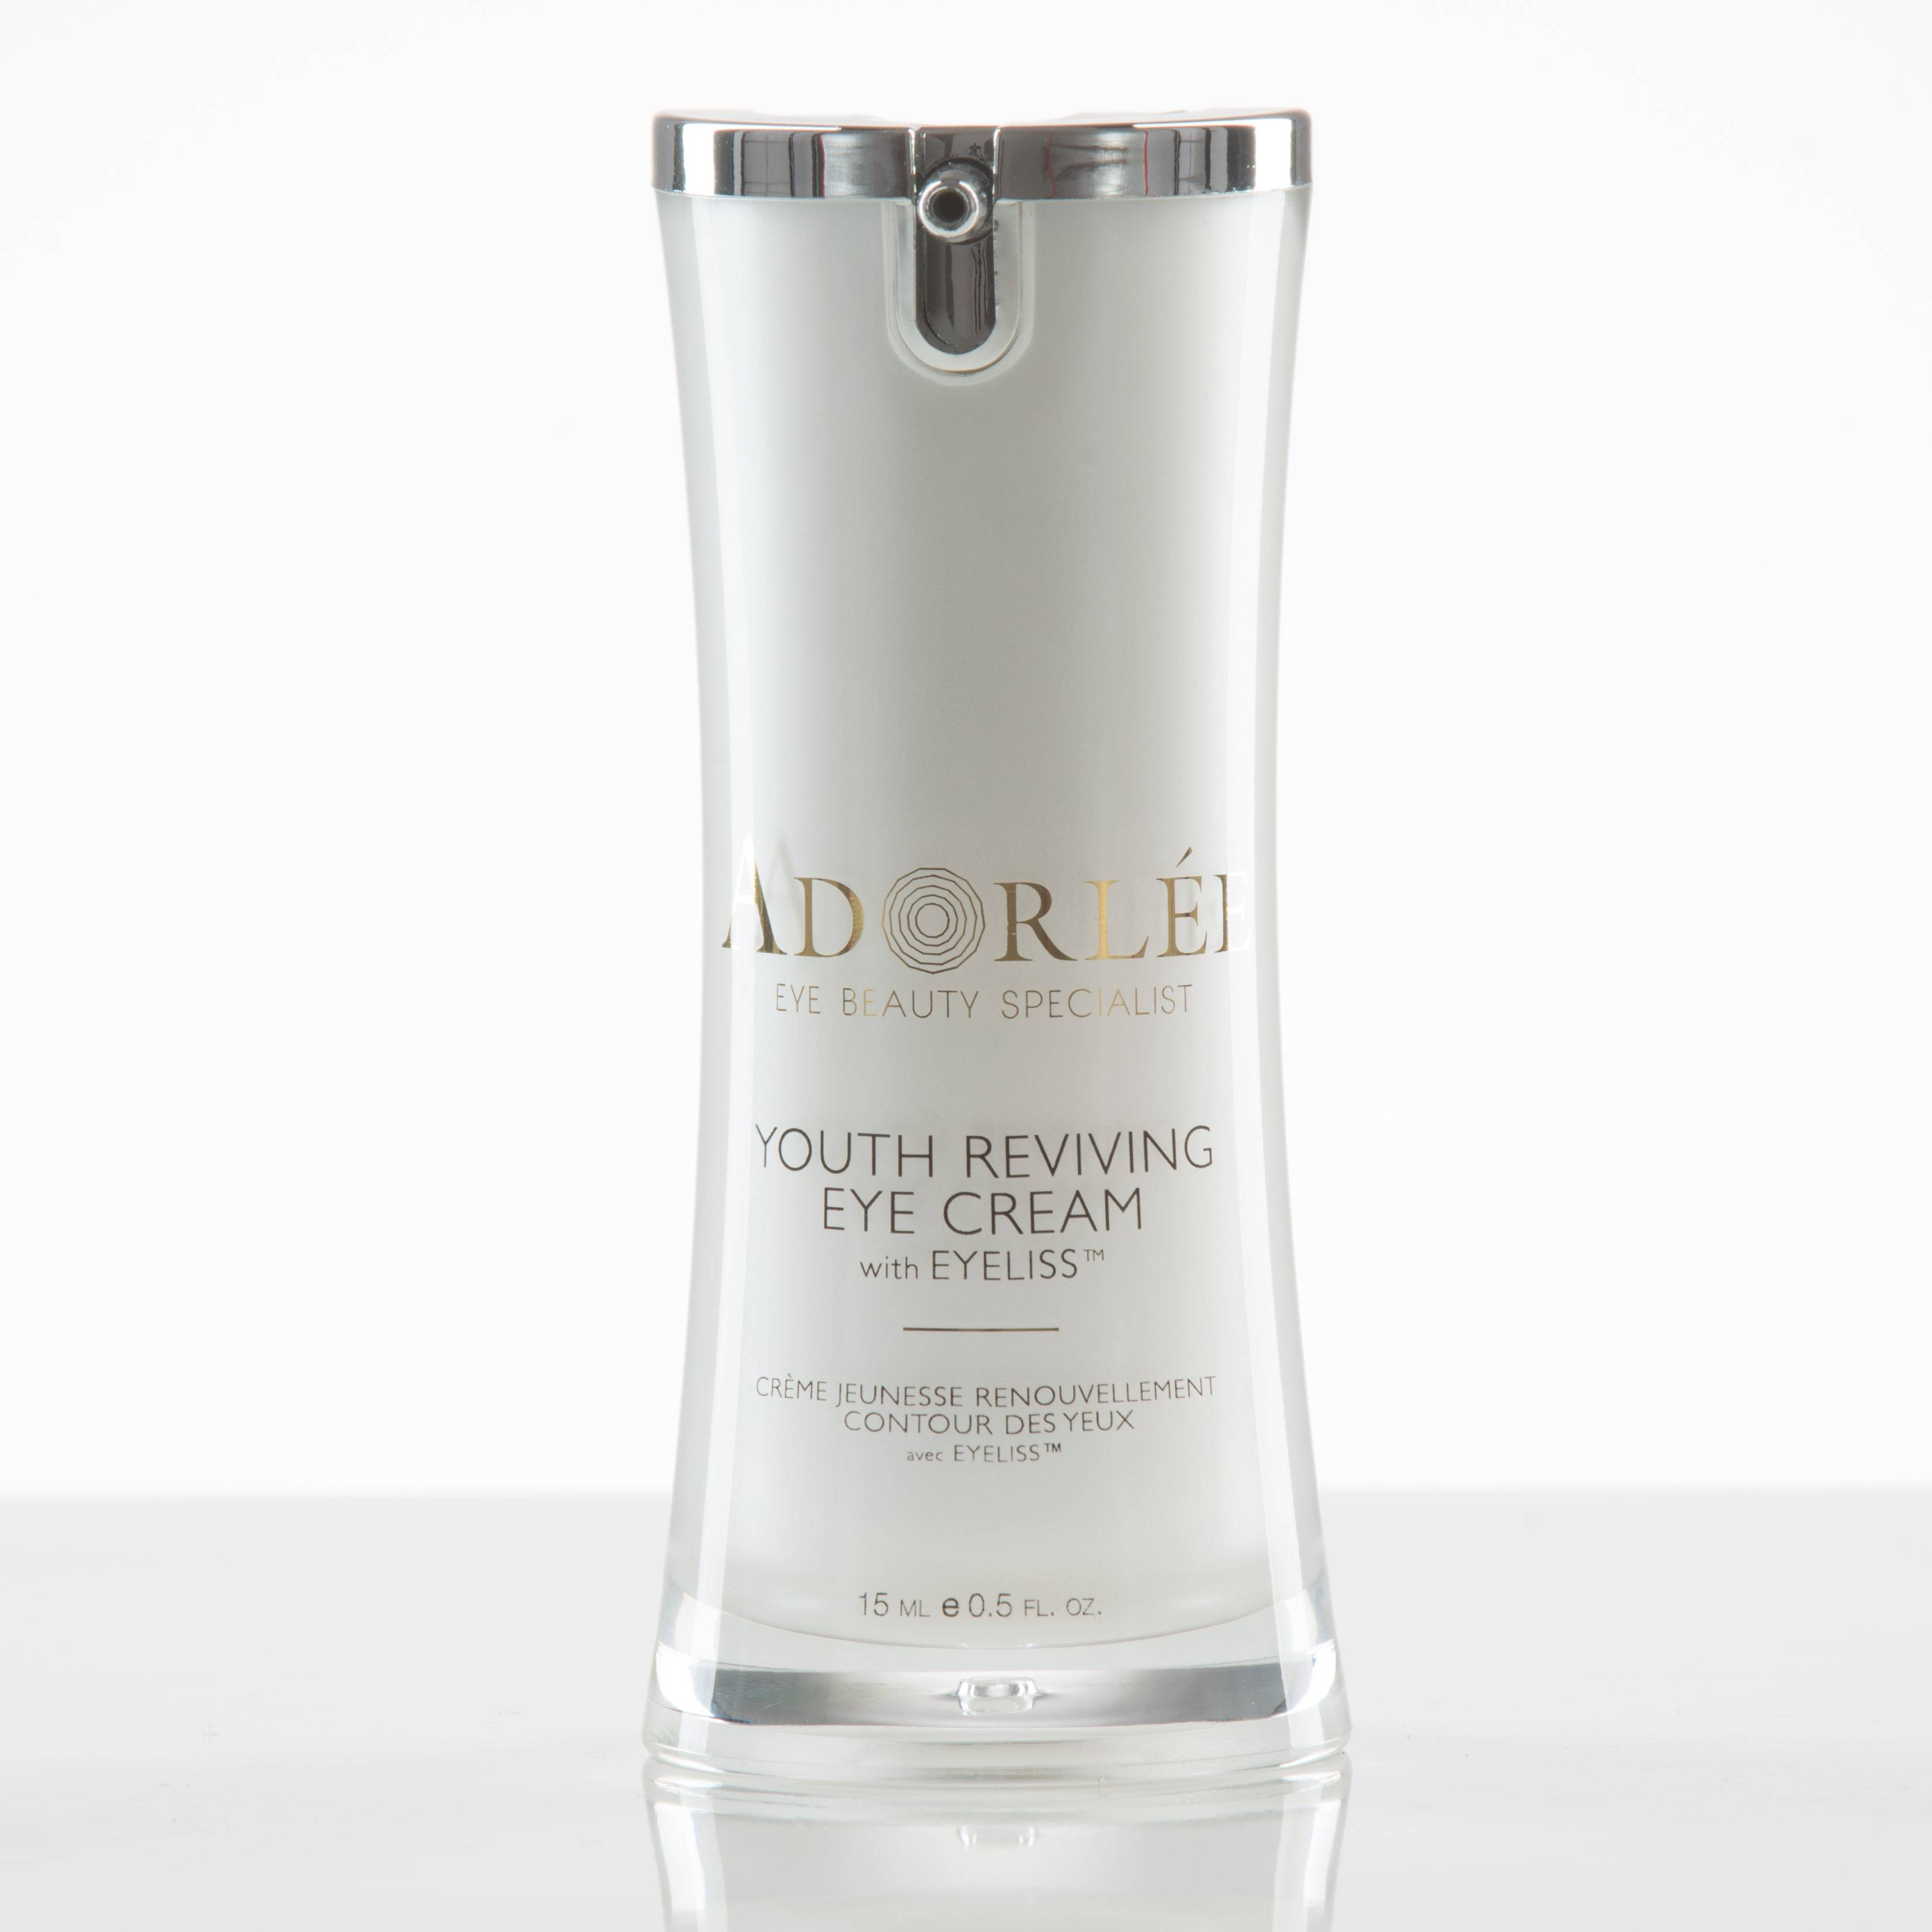 Adorlee Night Youth Reviving Eye Cream